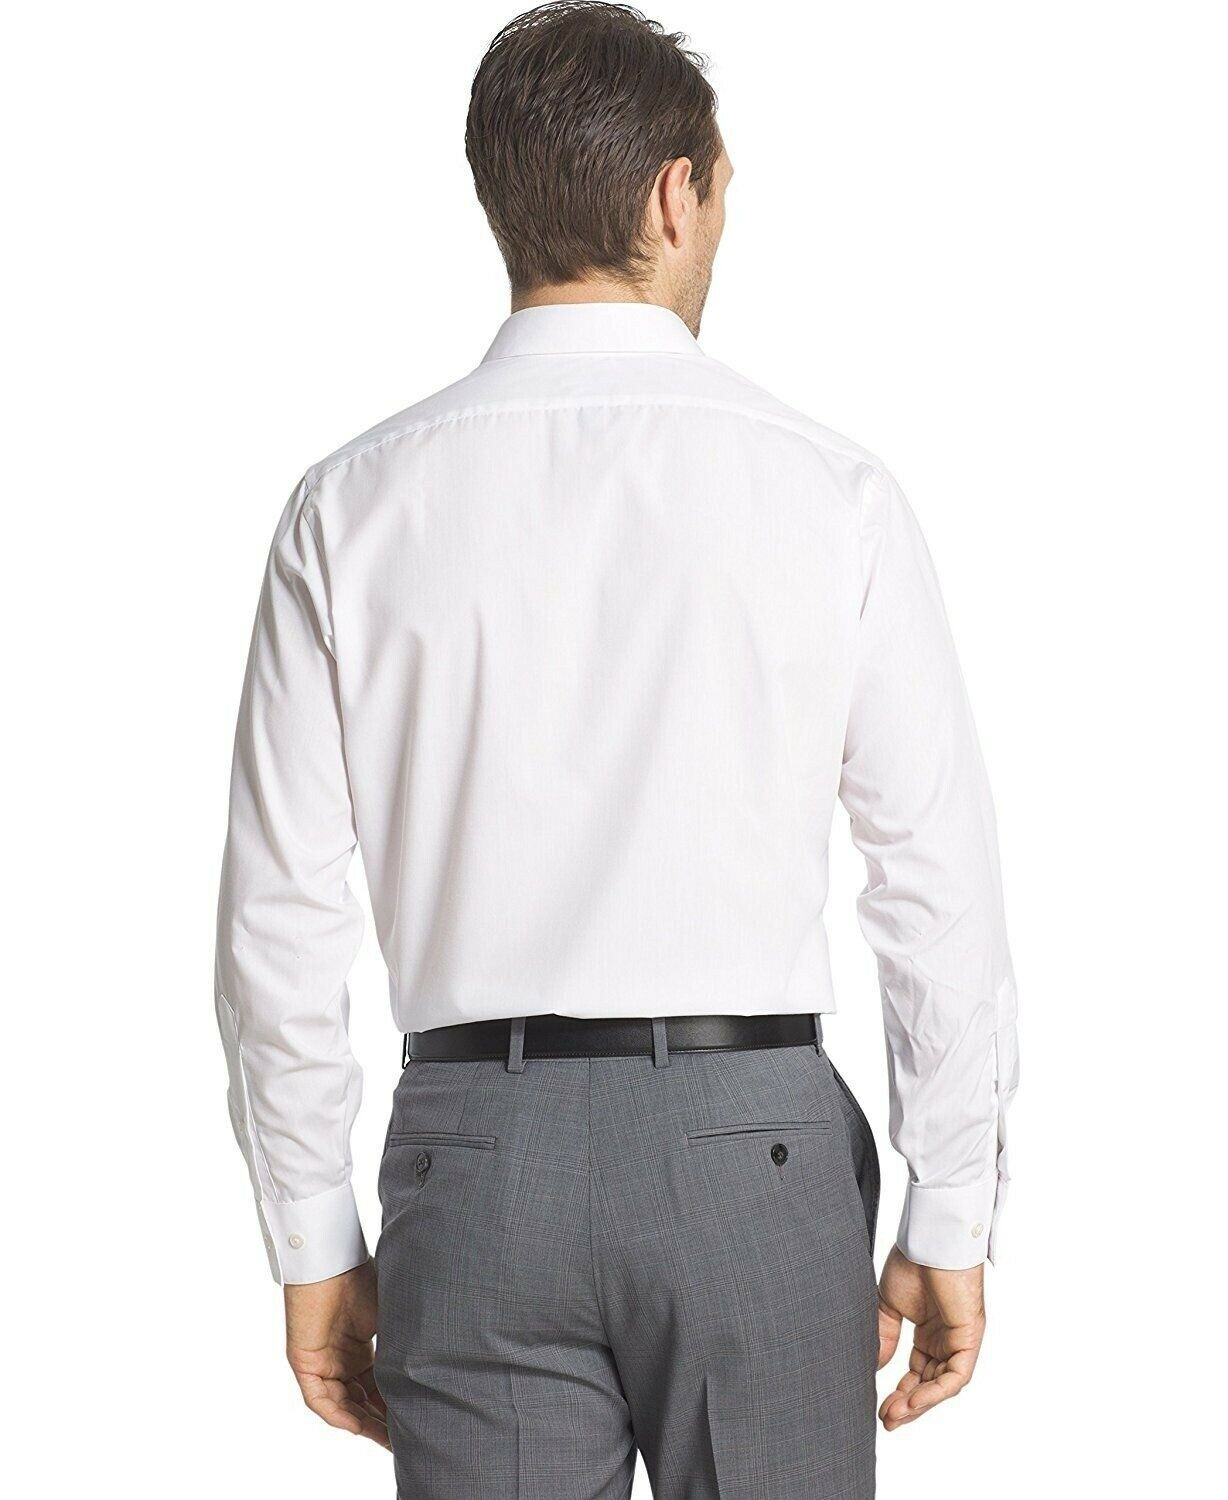 BERLIONI-ITALY-MEN-039-S-PRIME-FRENCH-CONVERTIBLE-CUFF-SOLID-DRESS-SHIRT-WHITE thumbnail 48